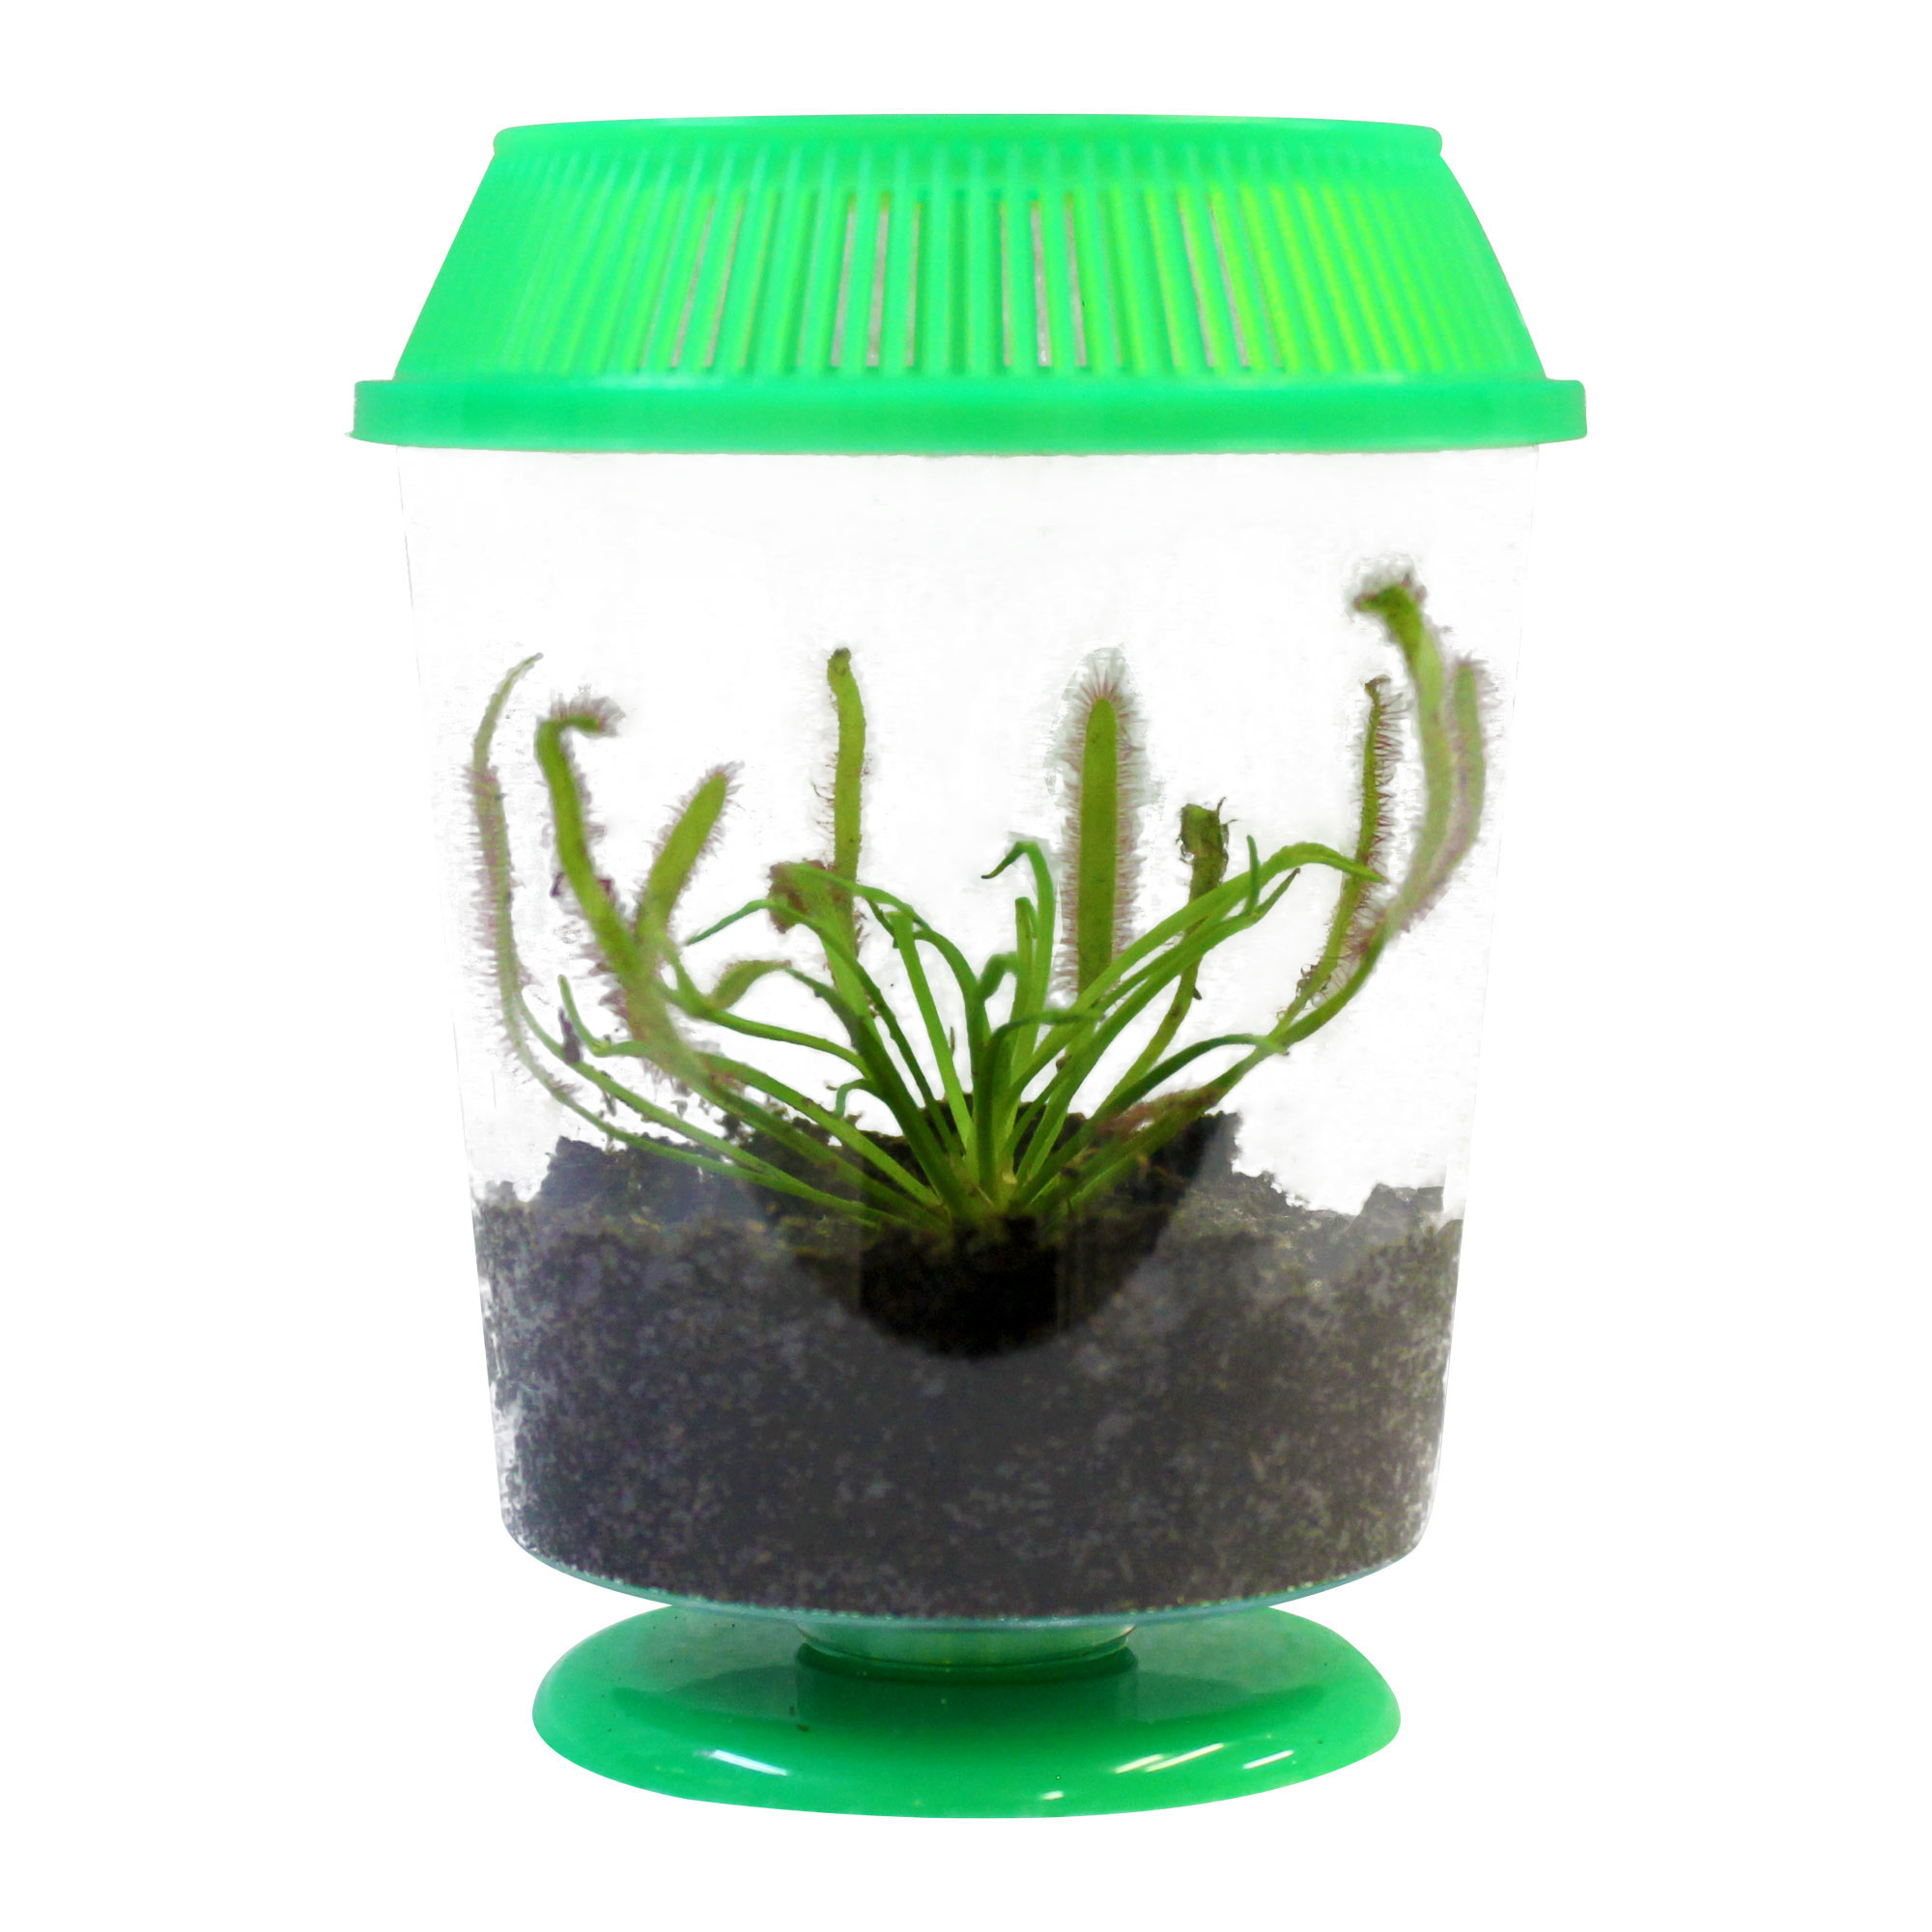 Venus Fly Traps Kits - Cool Bug Eating Fly Traps!